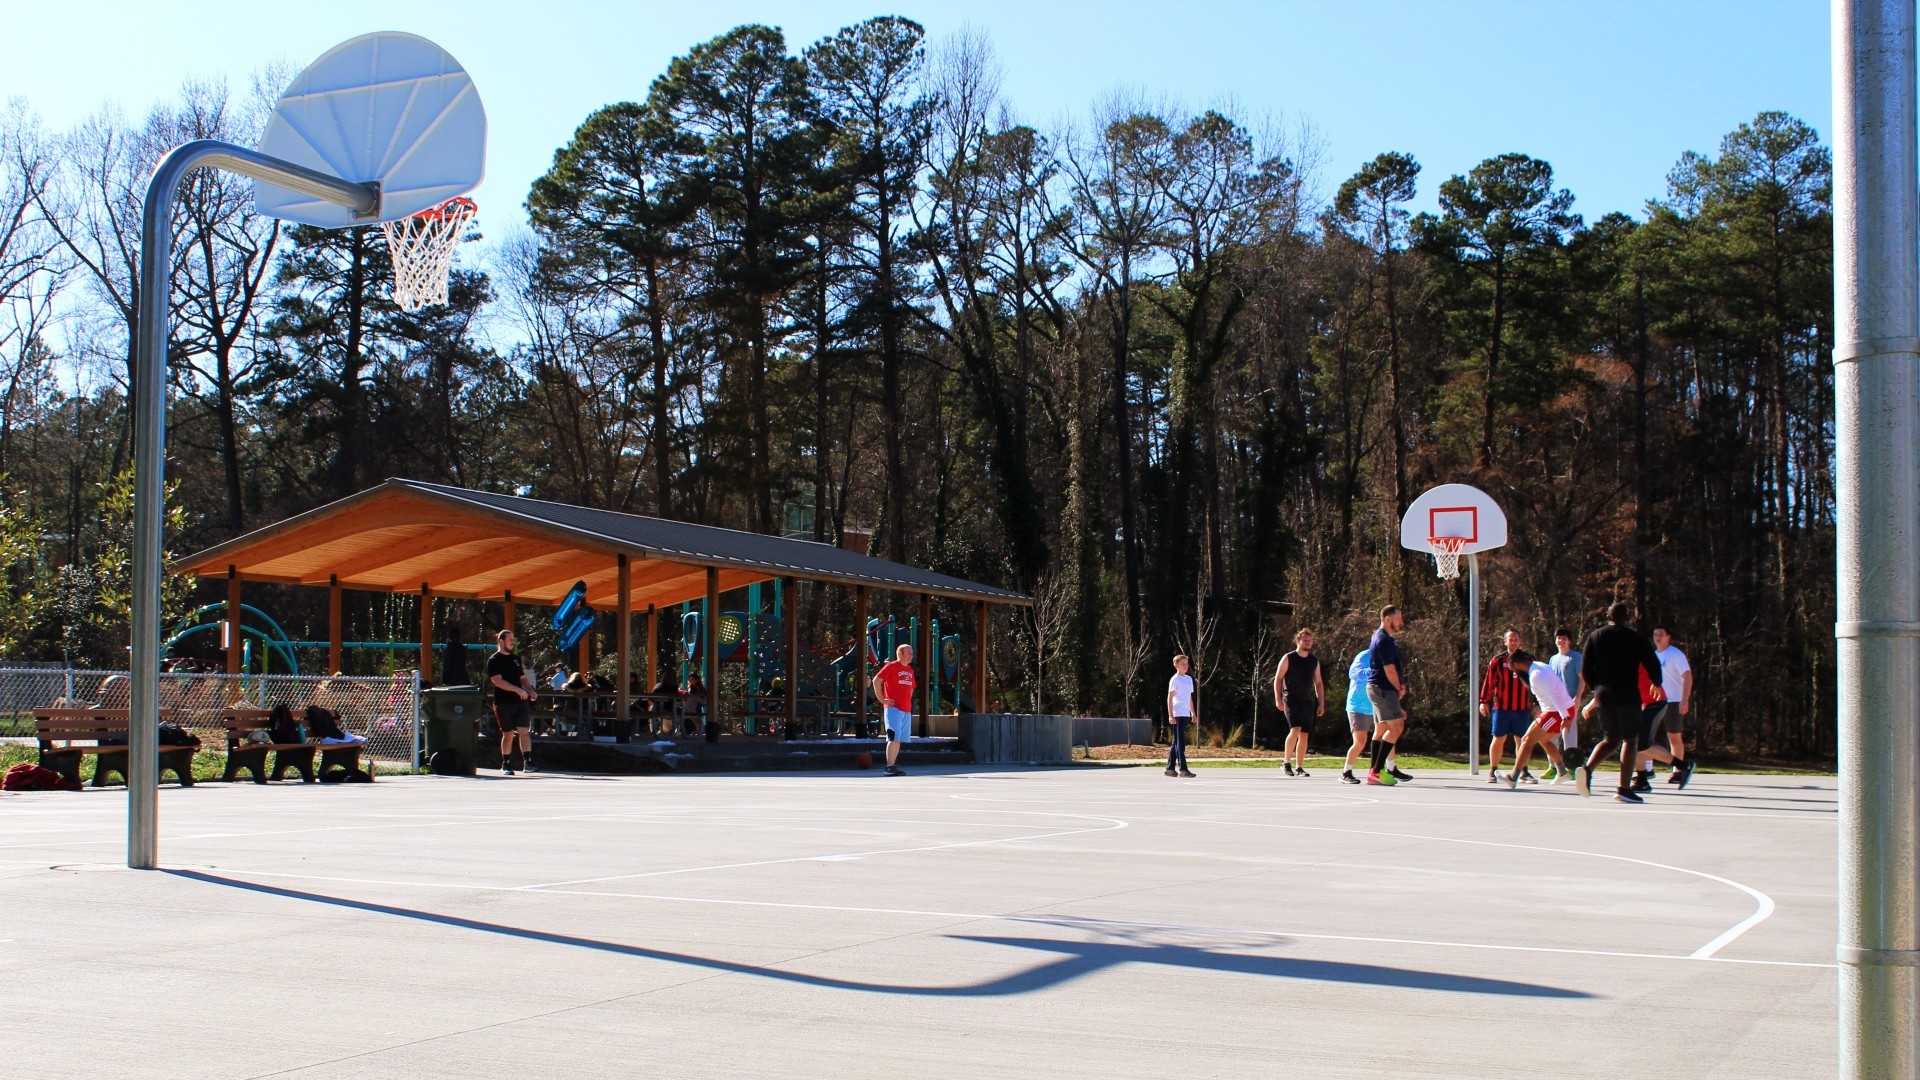 An outdoor basketball court with a concrete surface